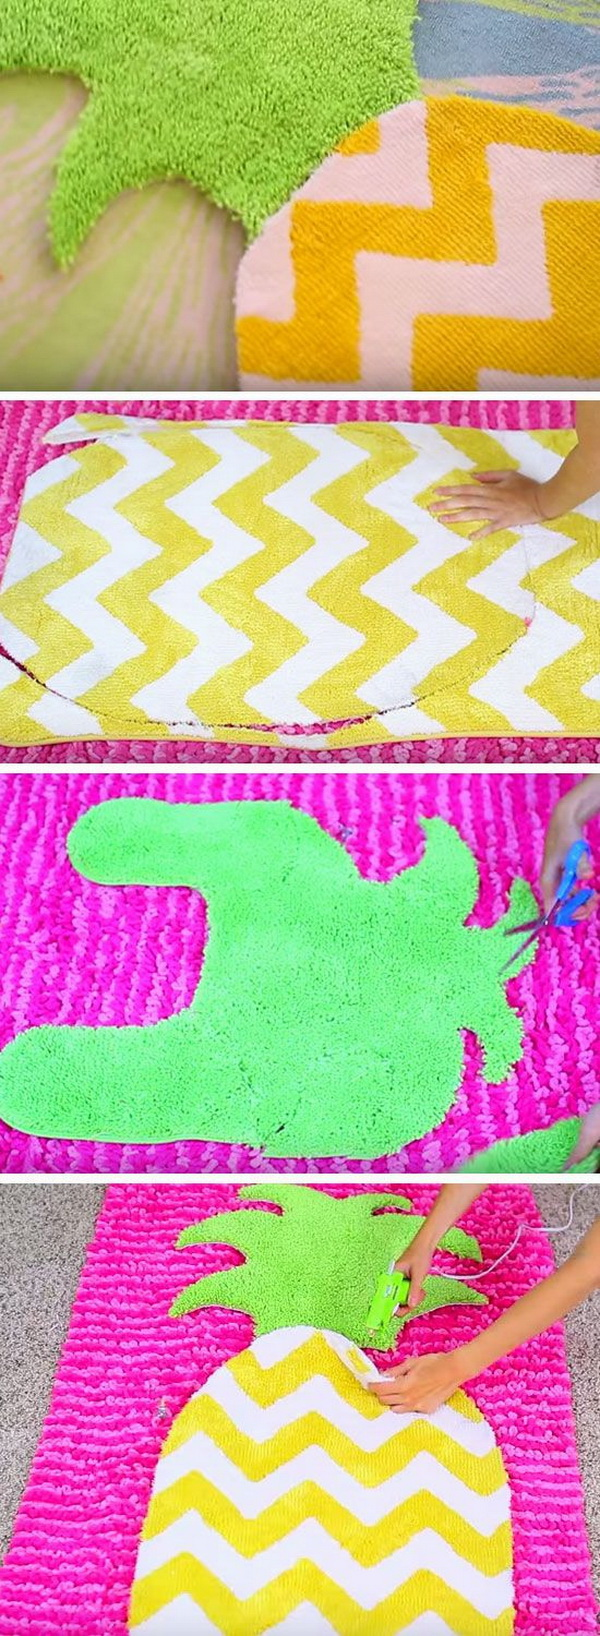 DIY Fruit Rug Lovely And Cute For Any Room Girls Also Easy